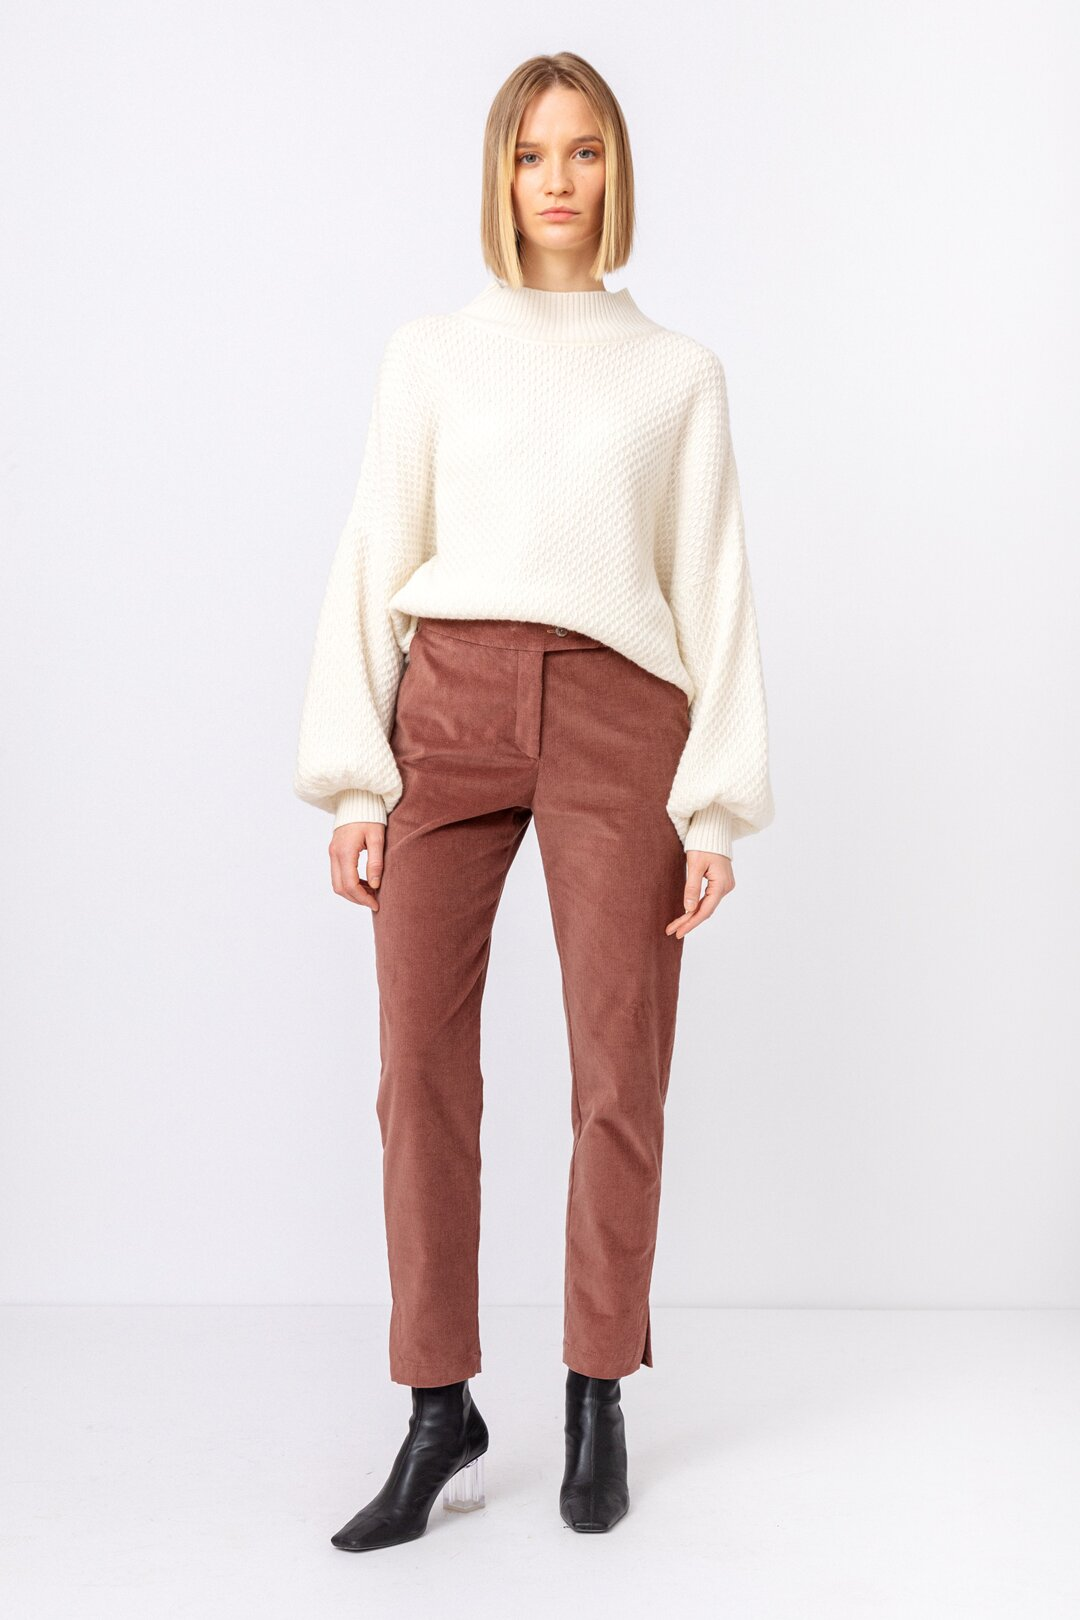 outfit-7c8a9227